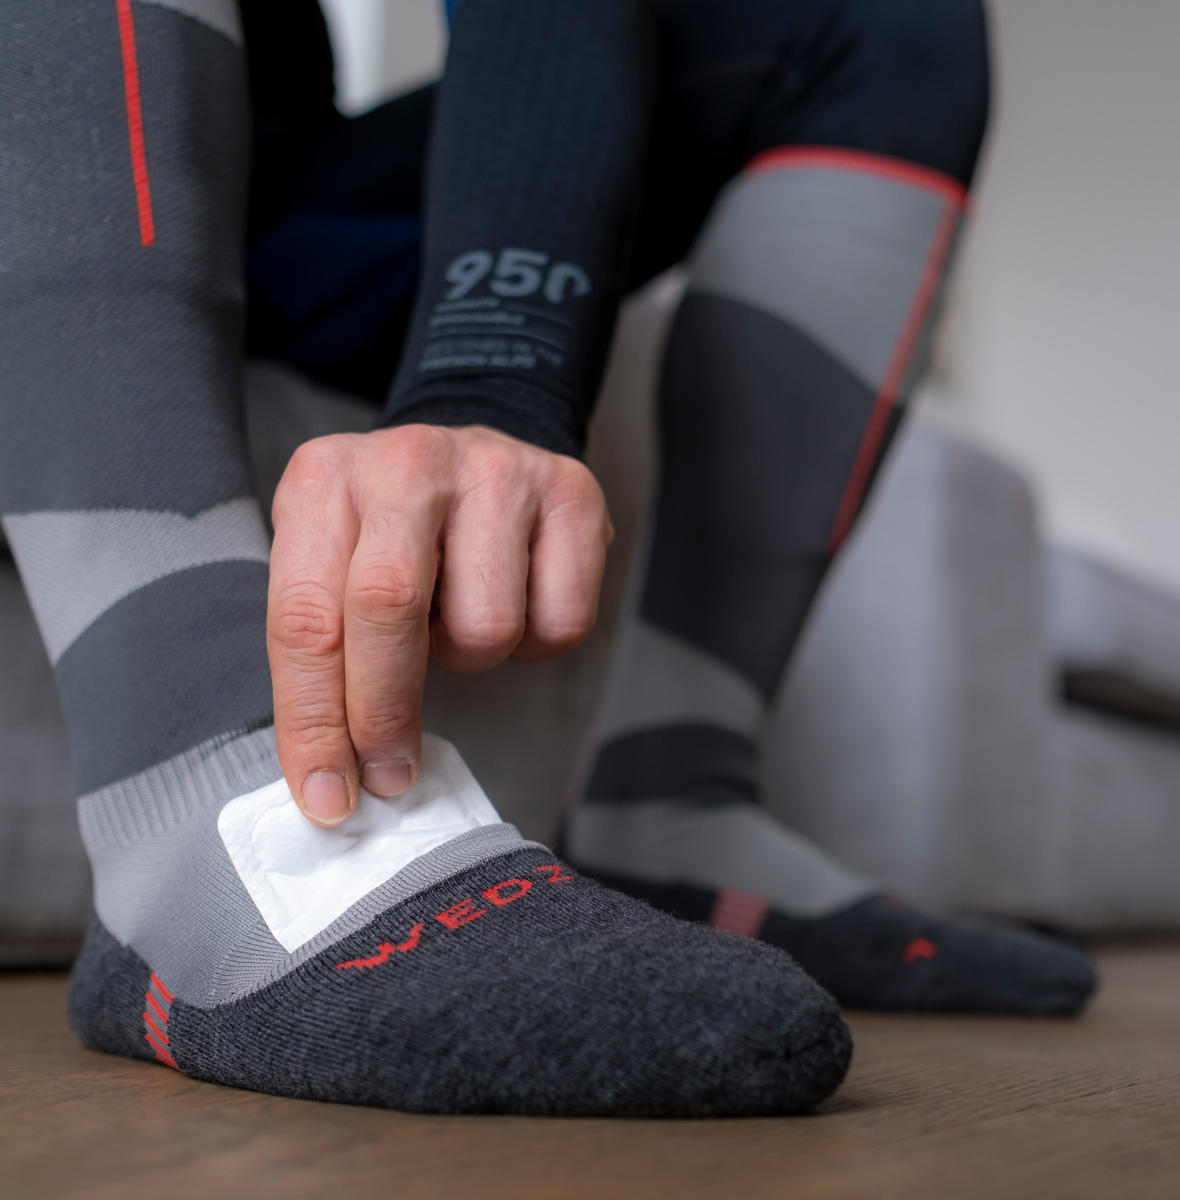 no more cold feet when wearing ski boots - media 2